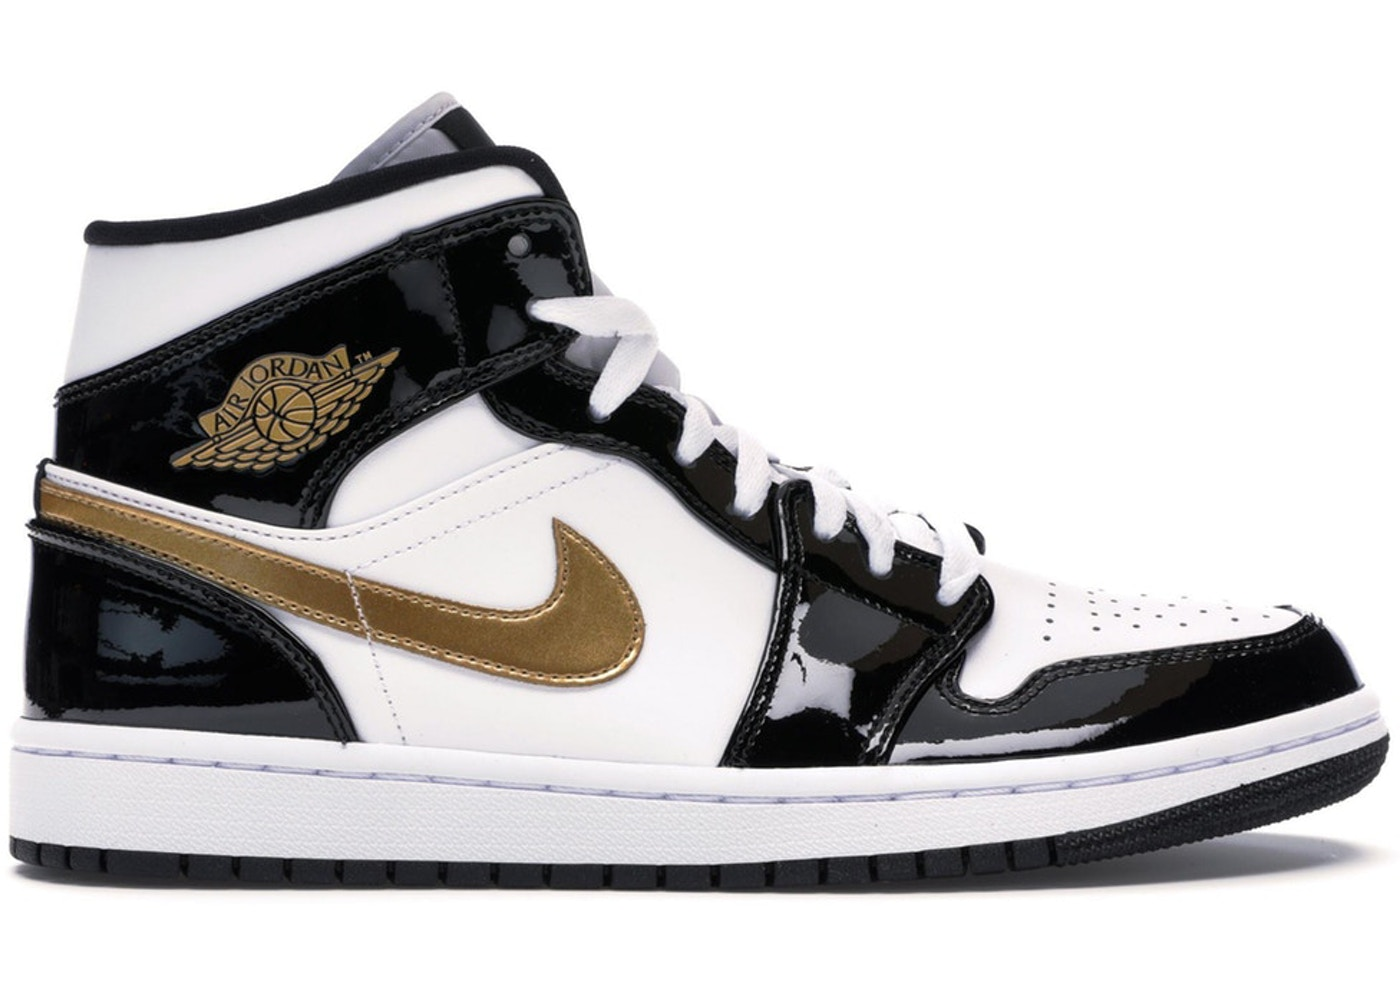 9612a28a9bb7 Jordan 1 Mid Patent Black White Gold - 852542-007